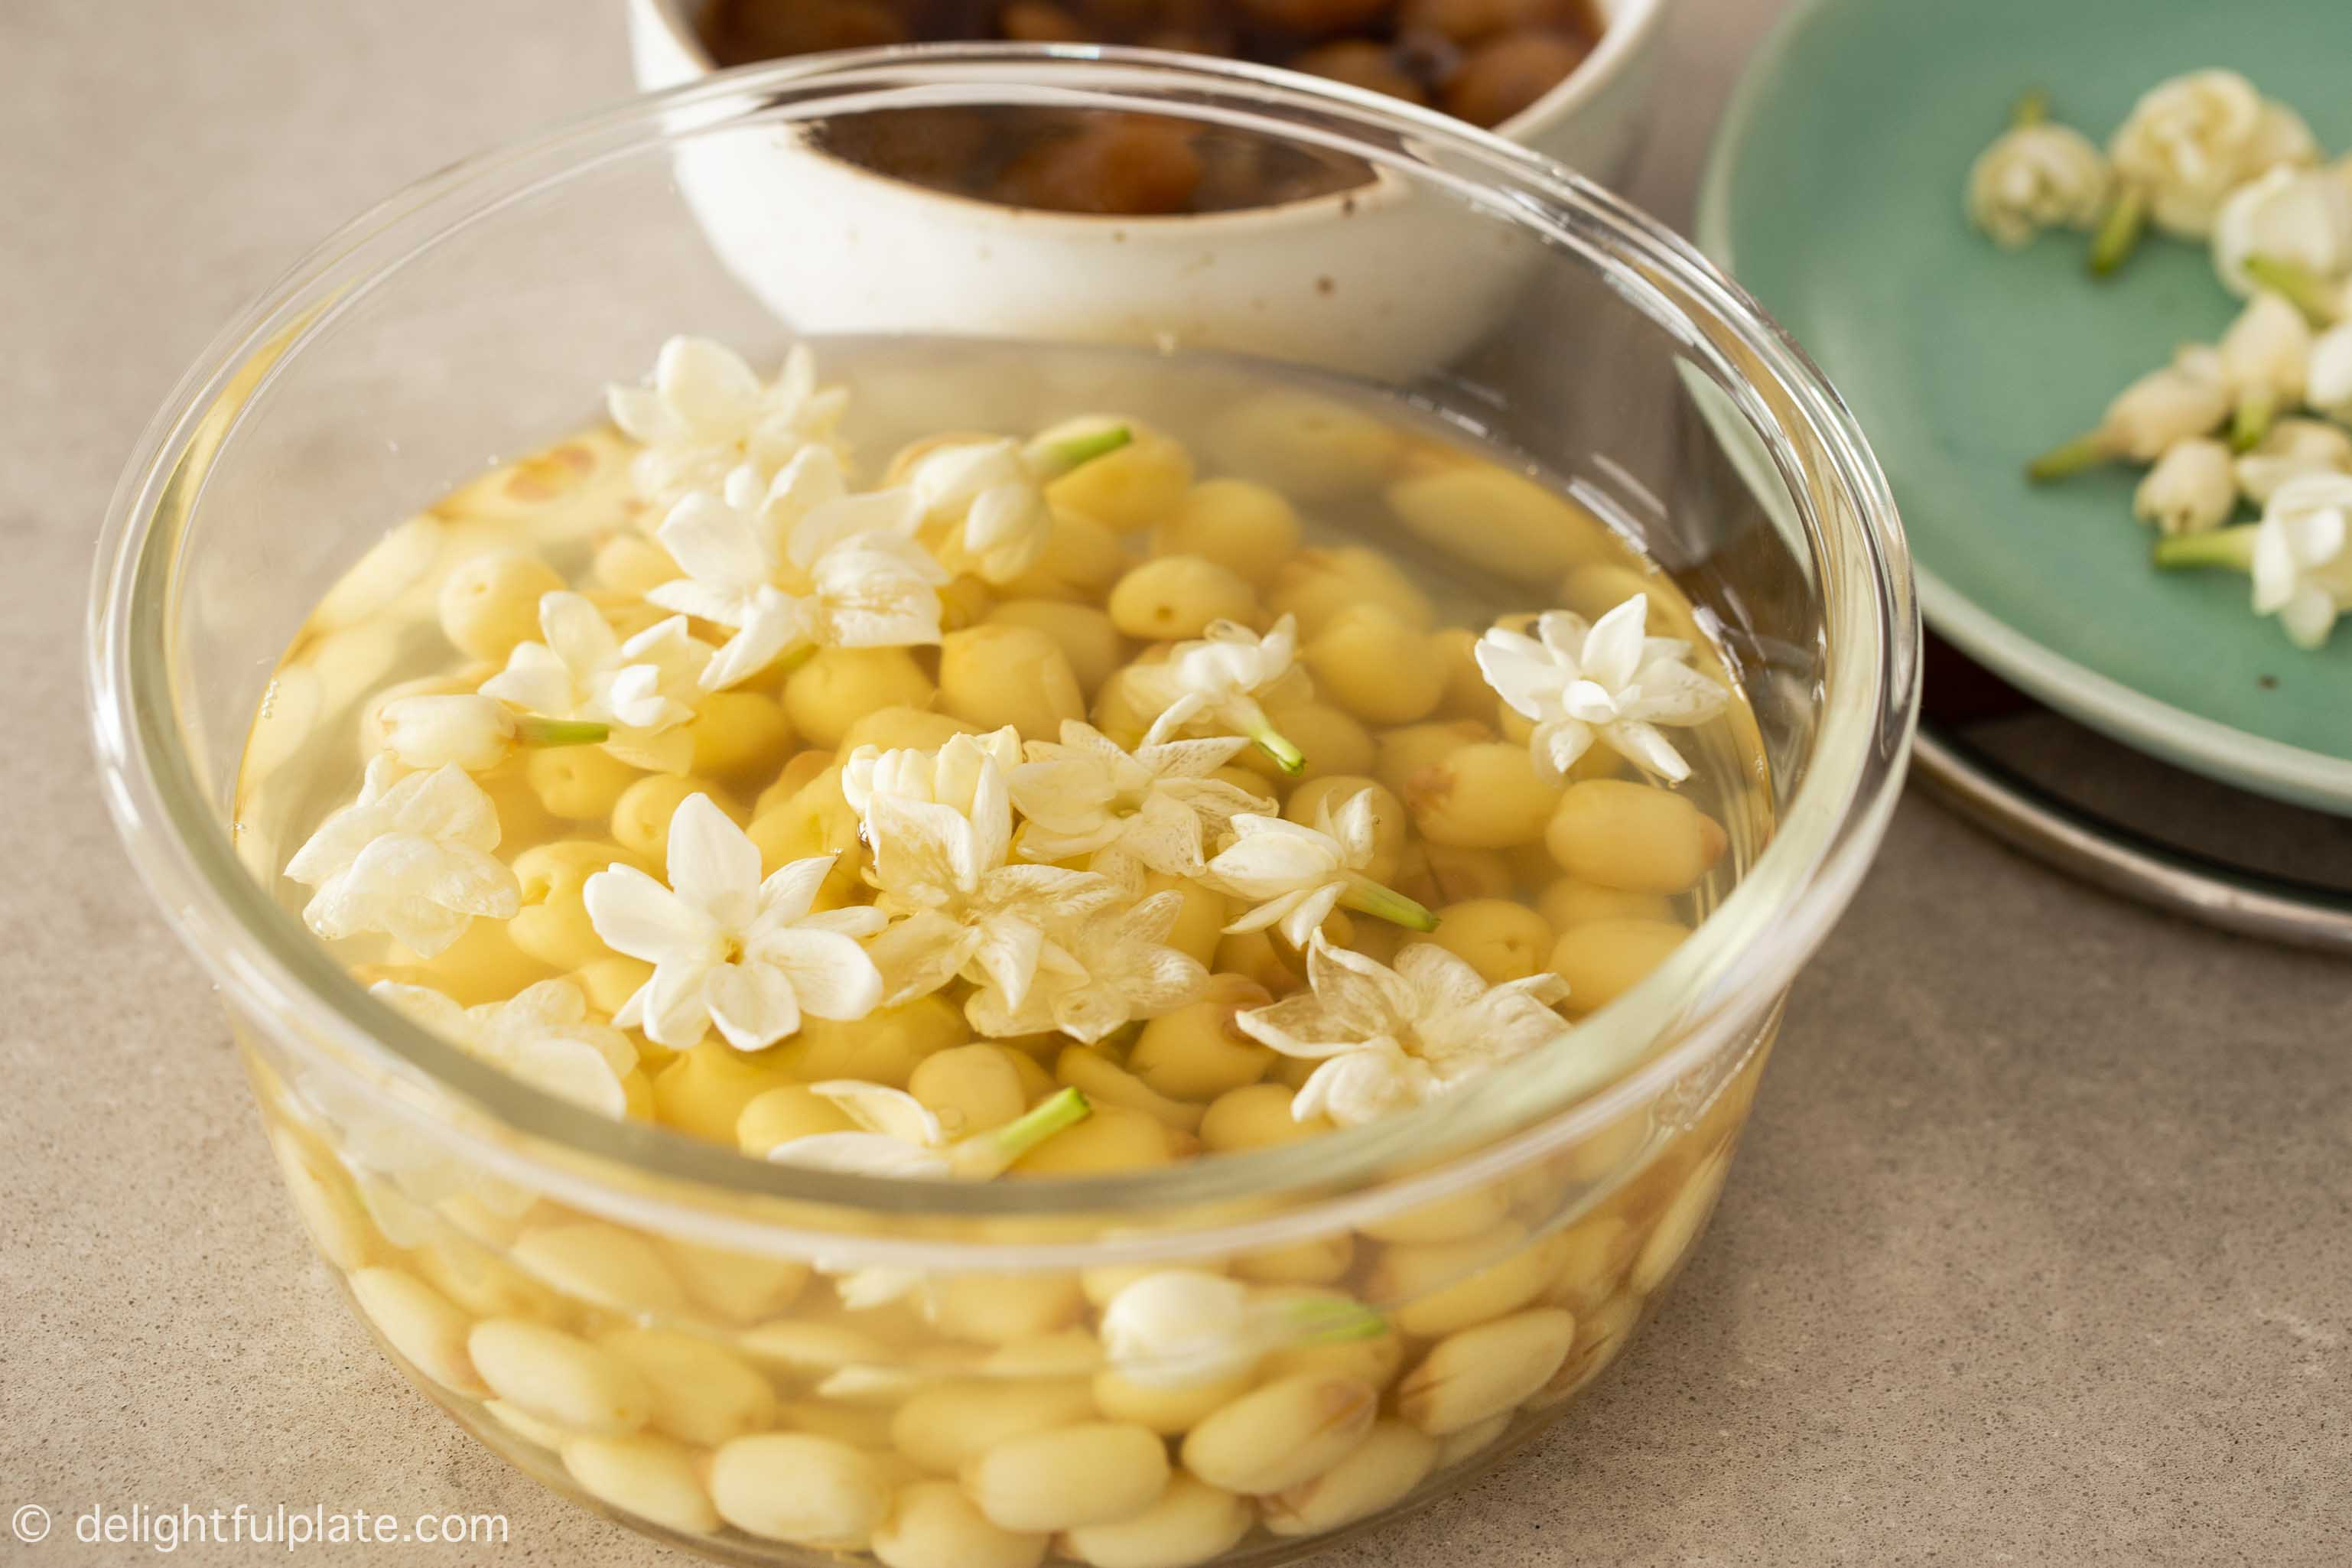 a container with lotus seed soup infused with jasmine flowers fragrance